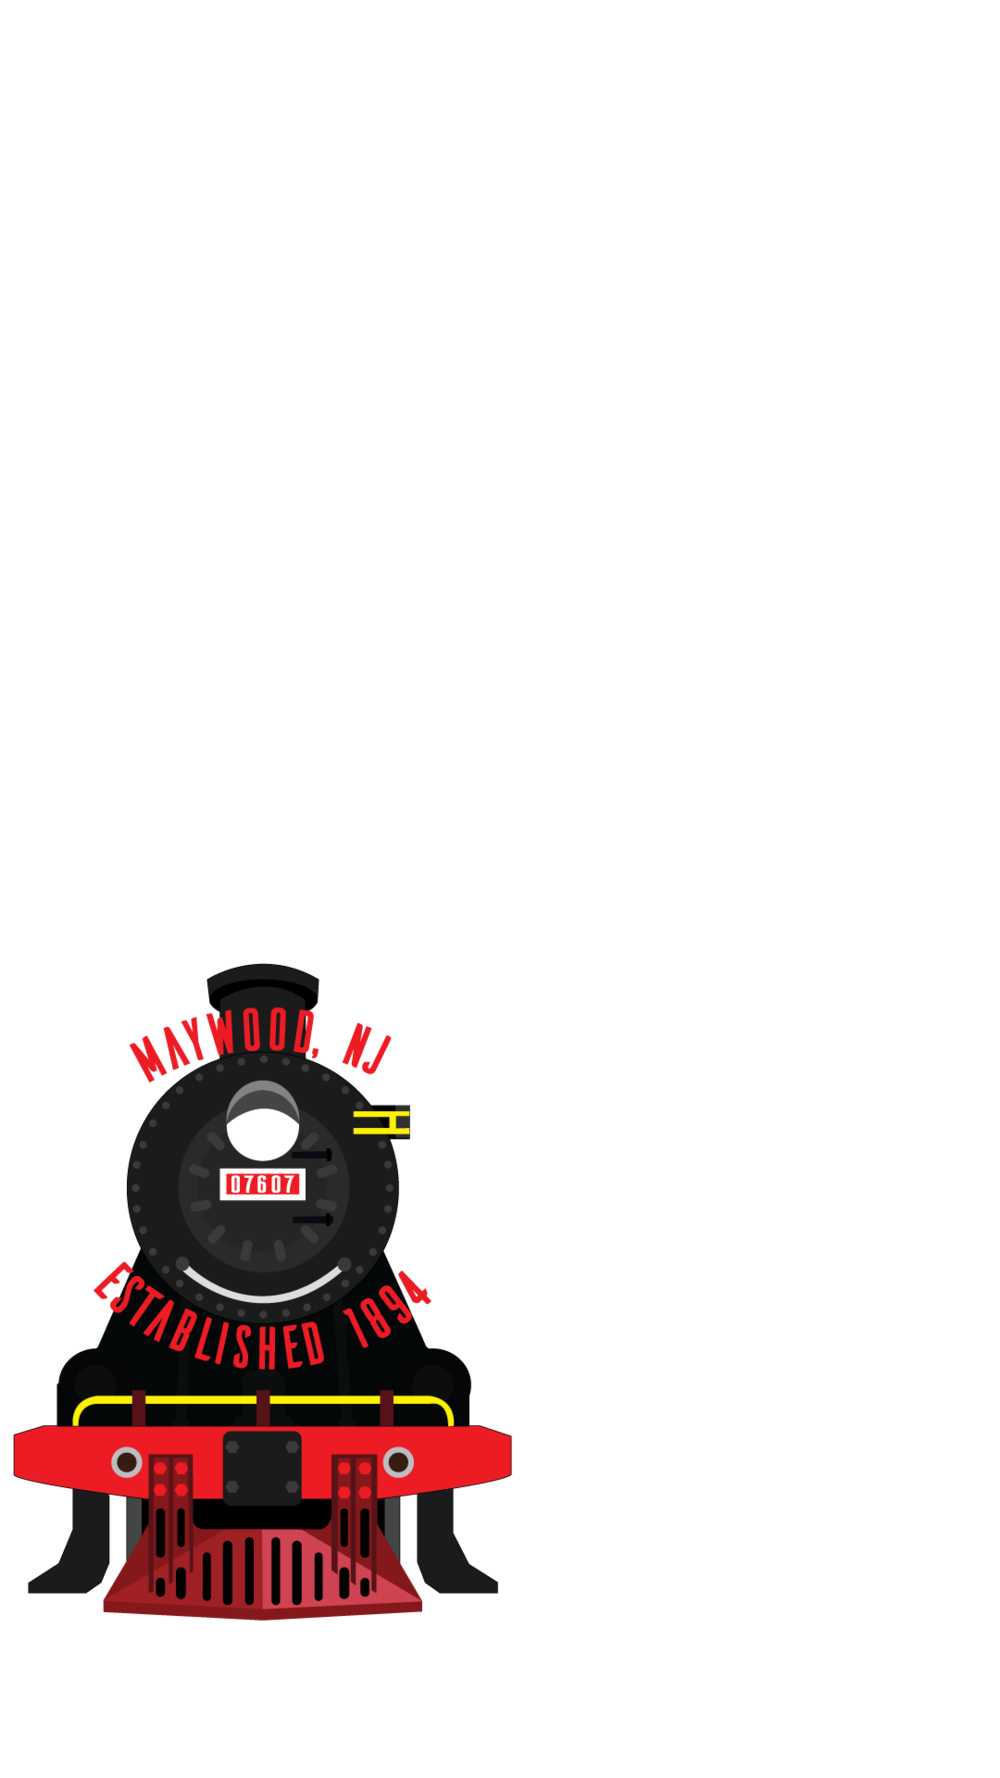 maywood_geofilter_3_complete_fixed.png